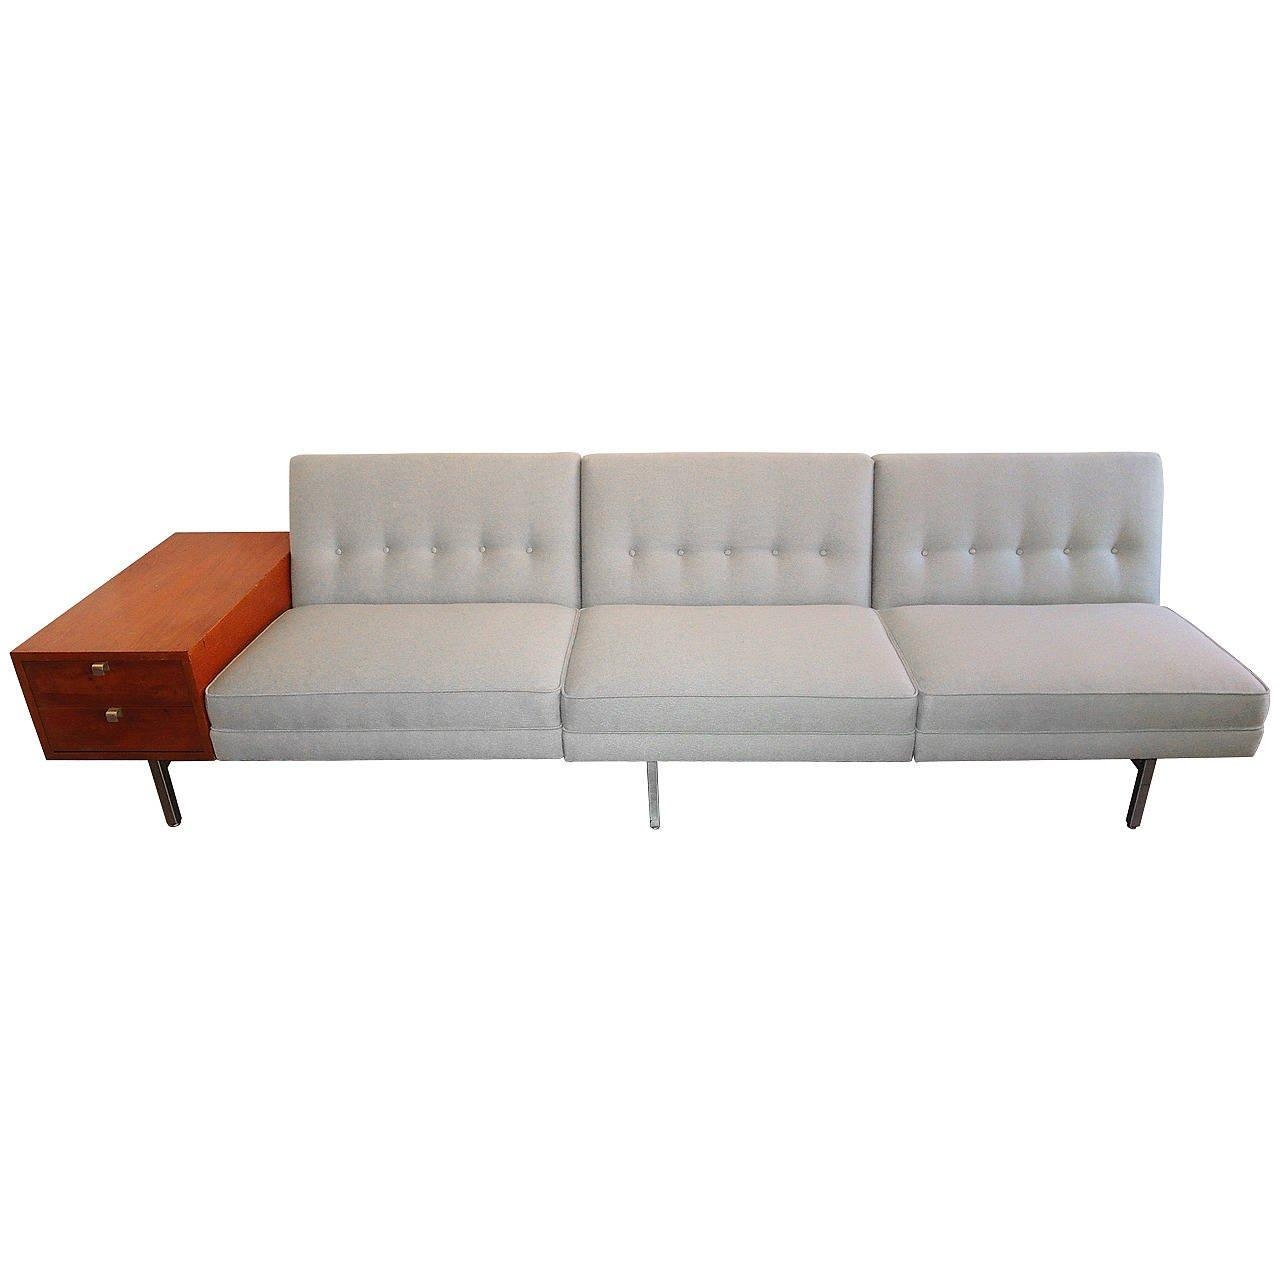 George Nelson Sofas – 32 For Sale At 1Stdibs Intended For George Nelson Sofas (View 4 of 20)